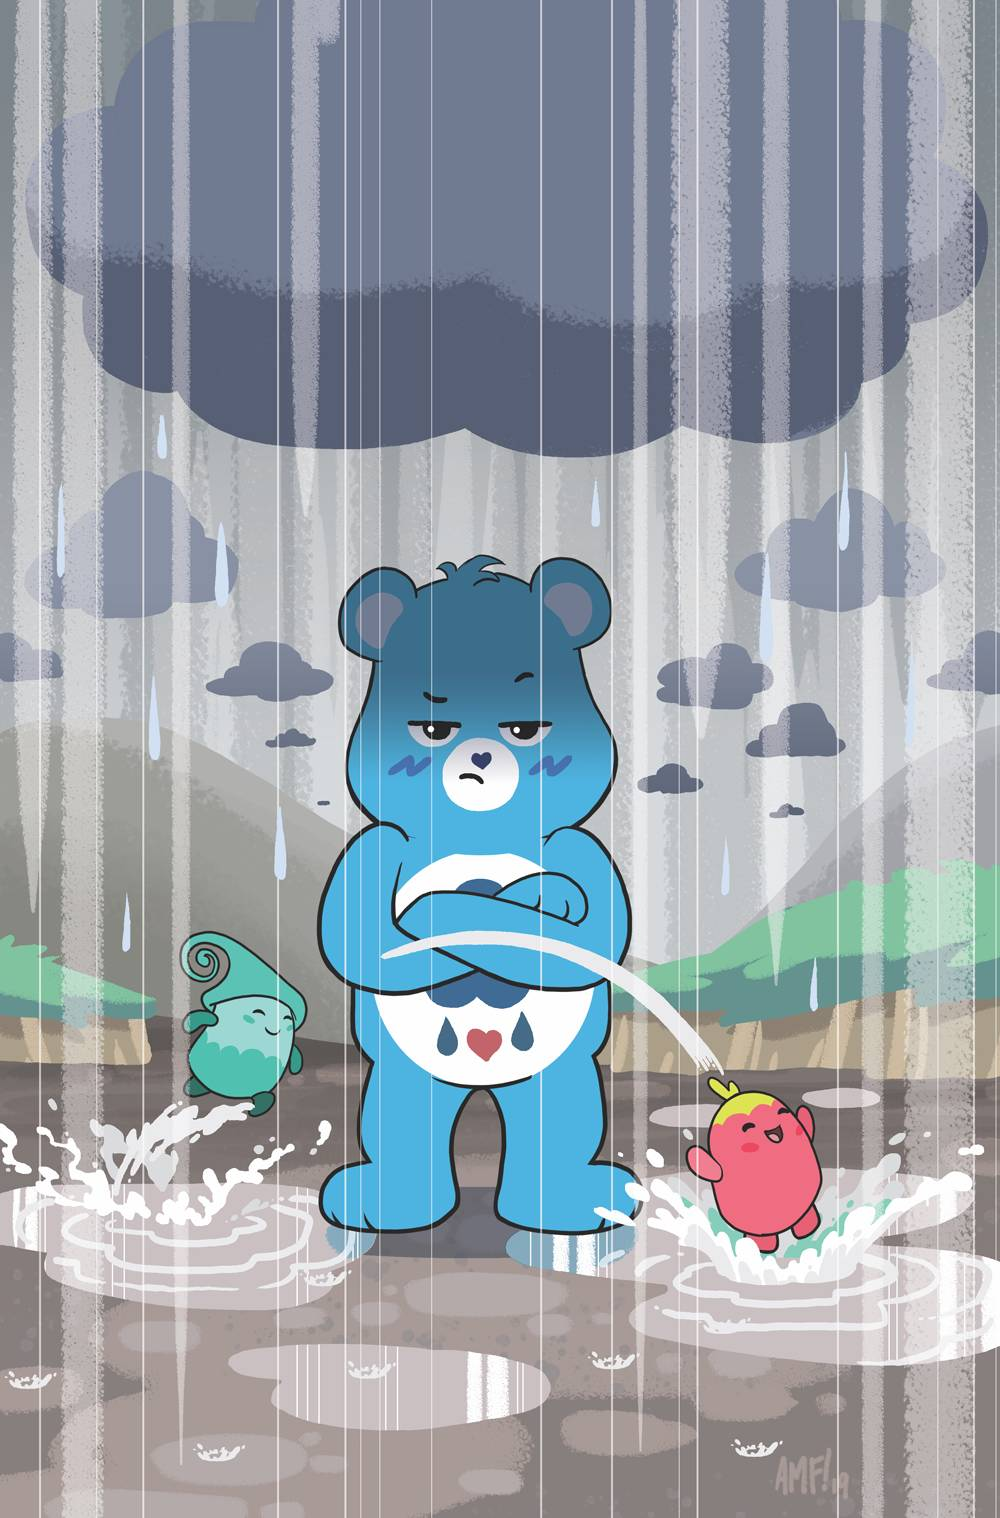 CARE BEARS 1 of 3 10 COPY INCV FLEECS.jpg